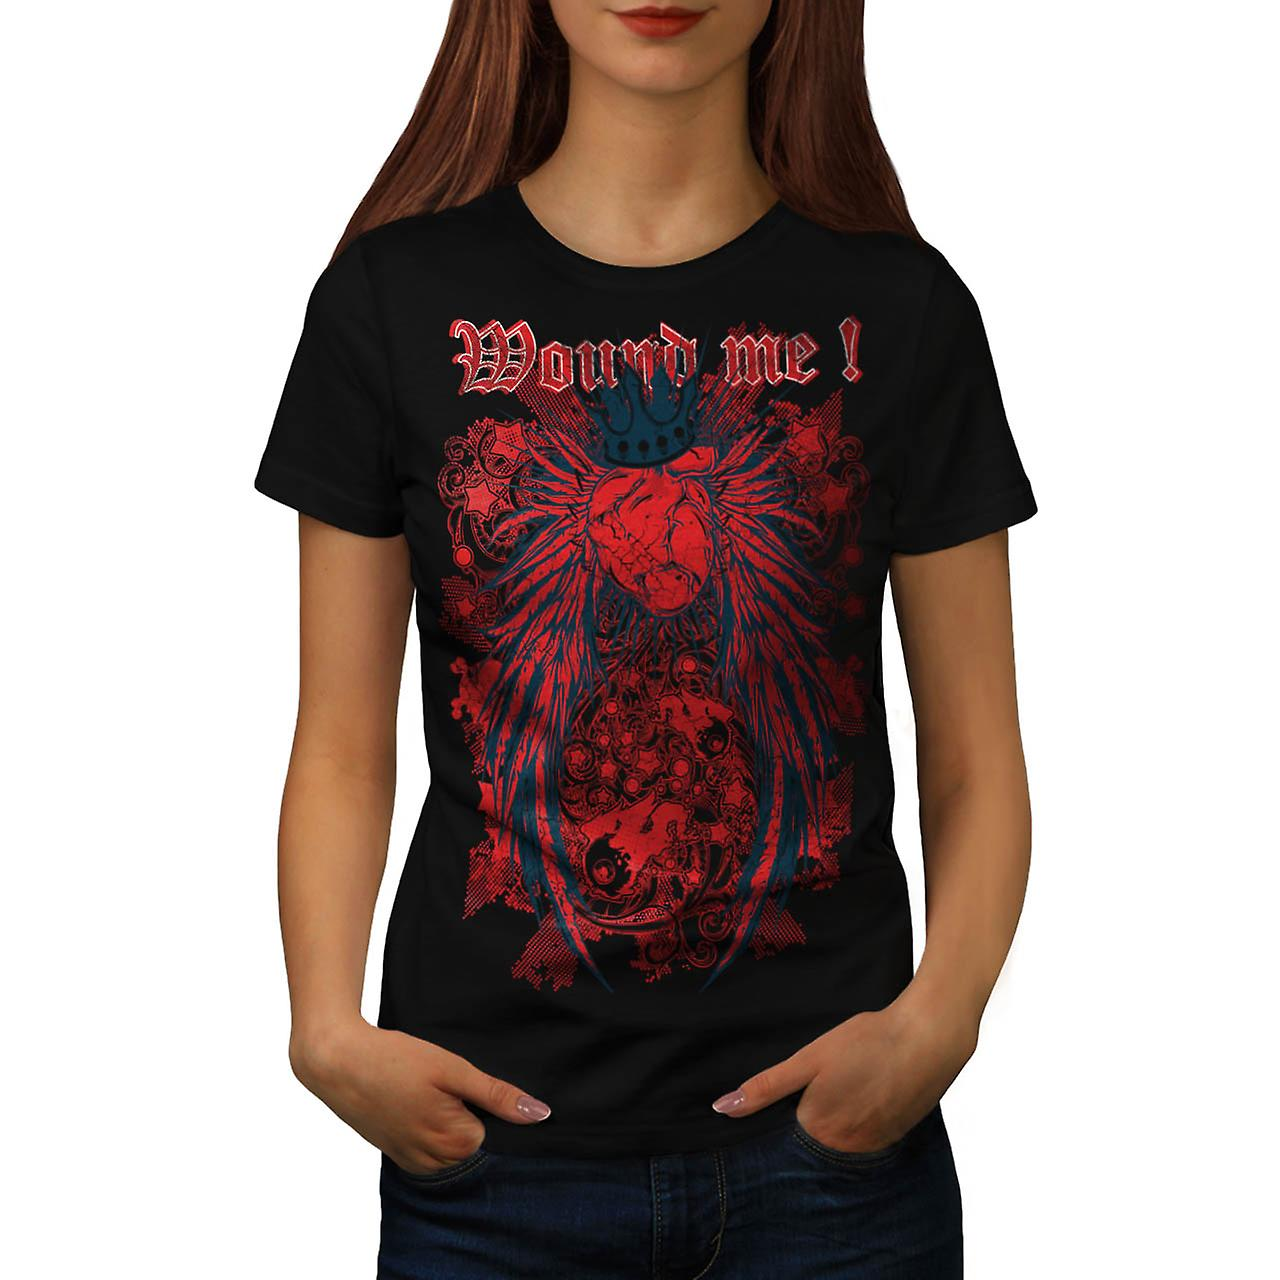 Mound Me Heart Royal Love Queen Women Black T-shirt | Wellcoda